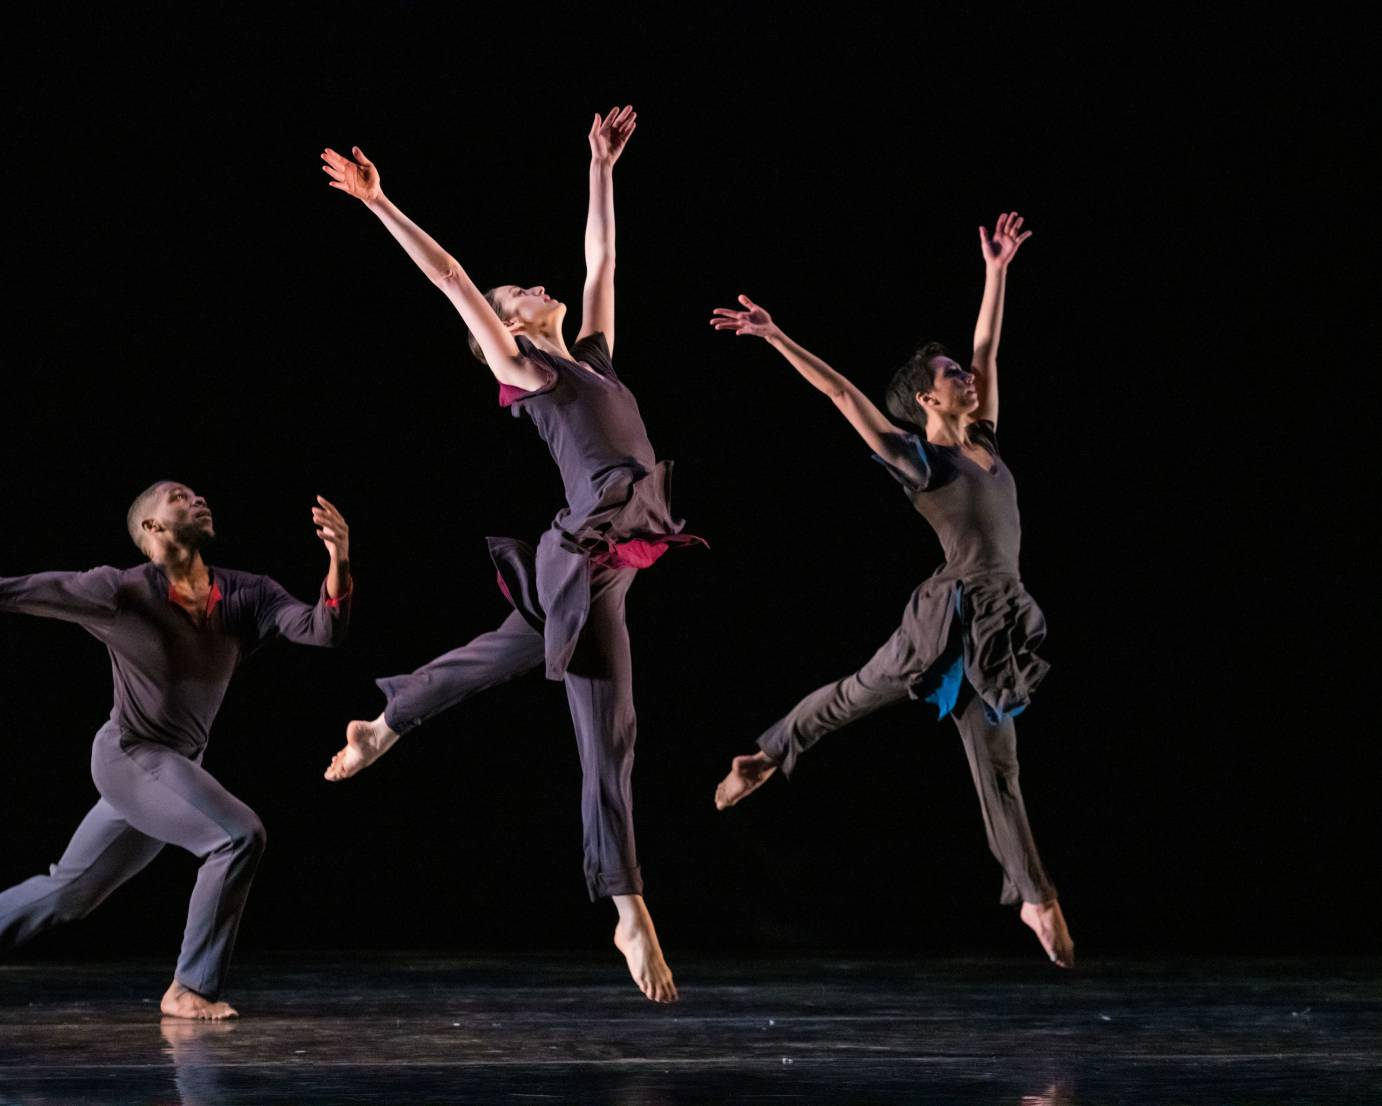 Two dancers leap to heaven, their arms extended, as one man runs behind them